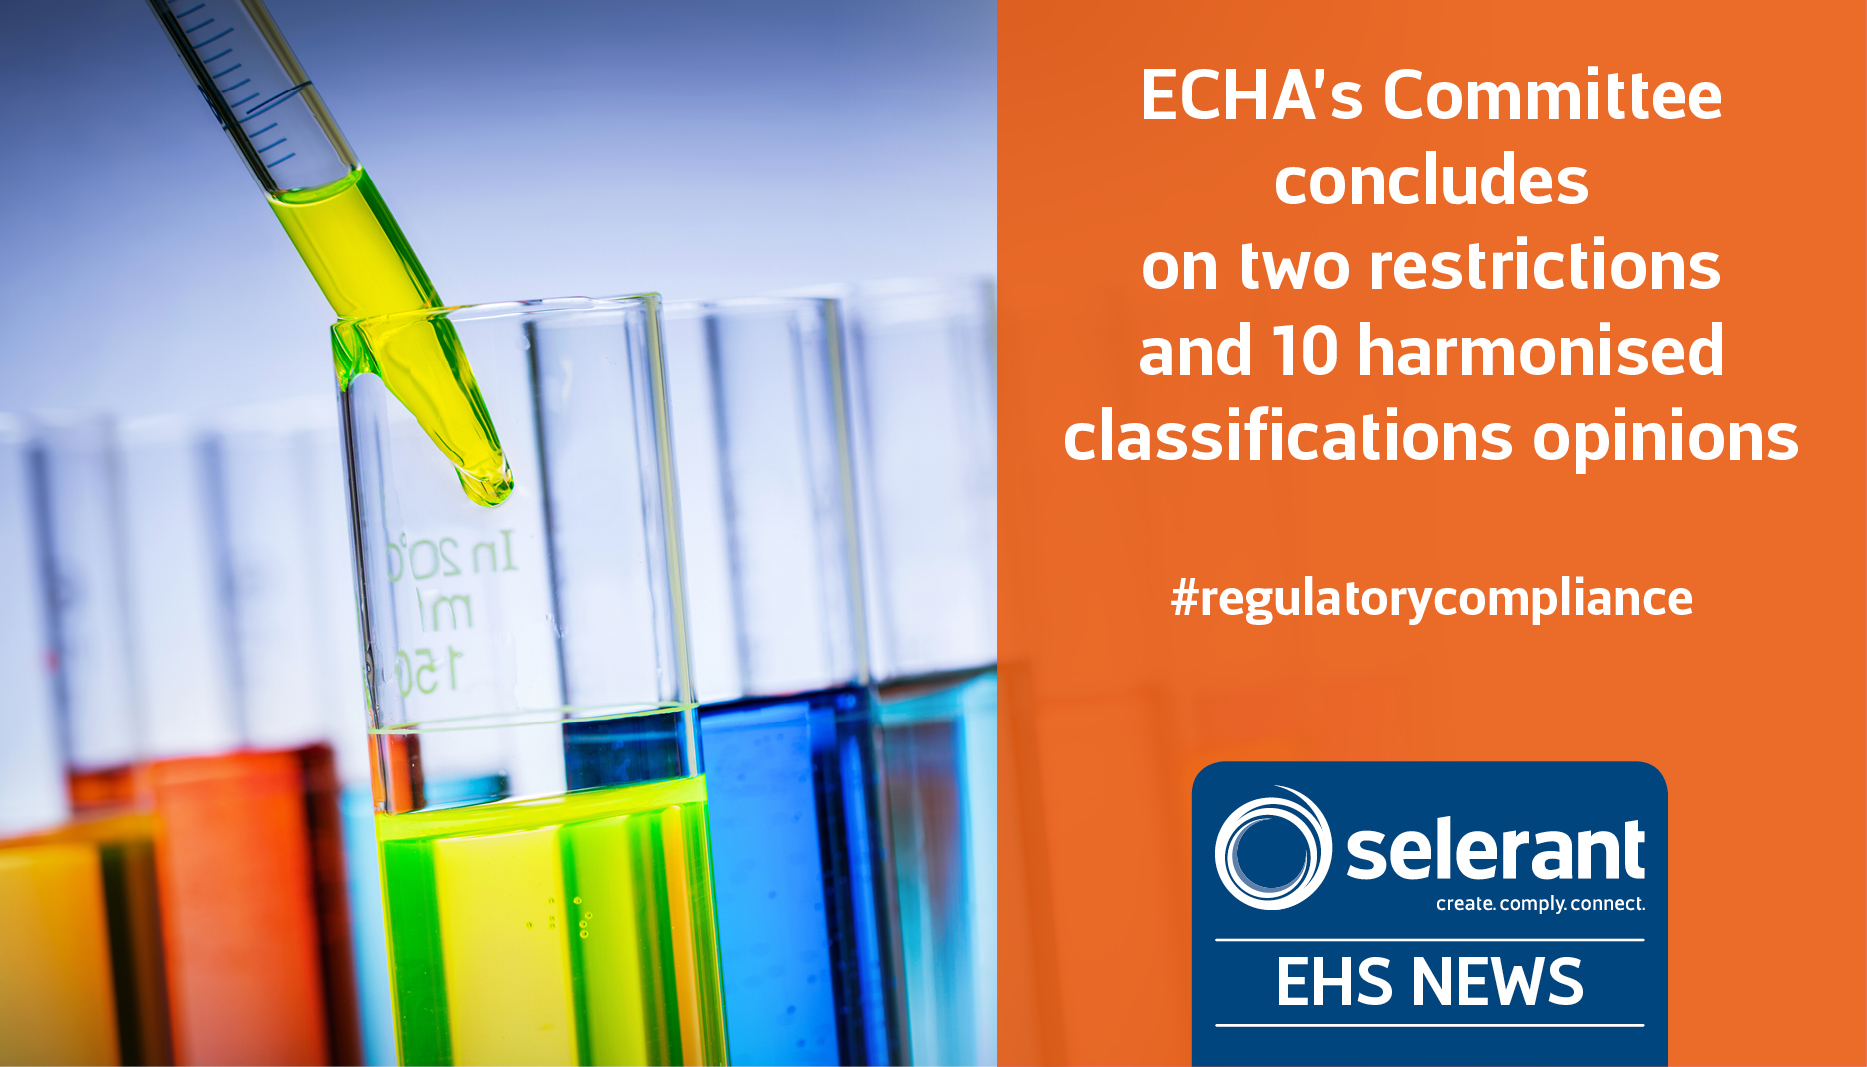 ECHA's Committee concludes on two restriction and 10 harmonised classifications opinions